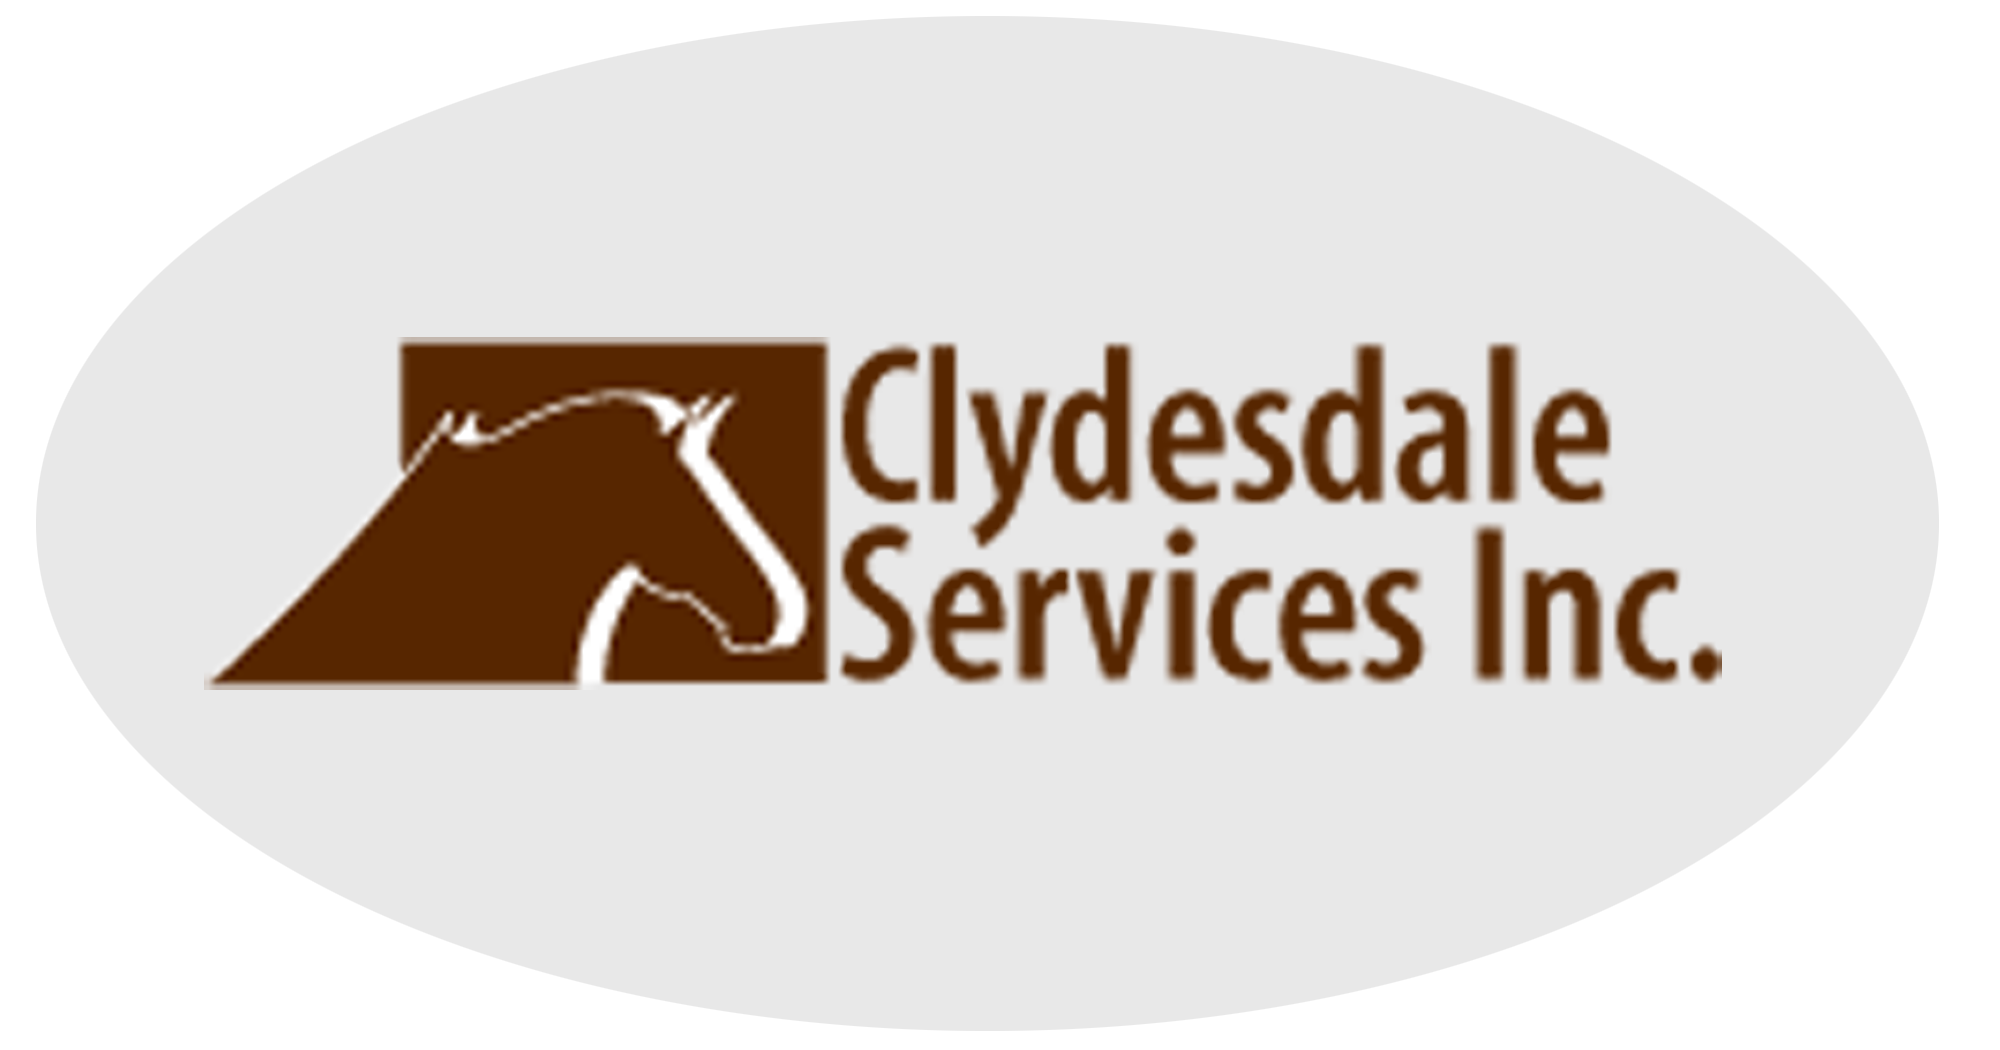 Clydesdale Services Inc.